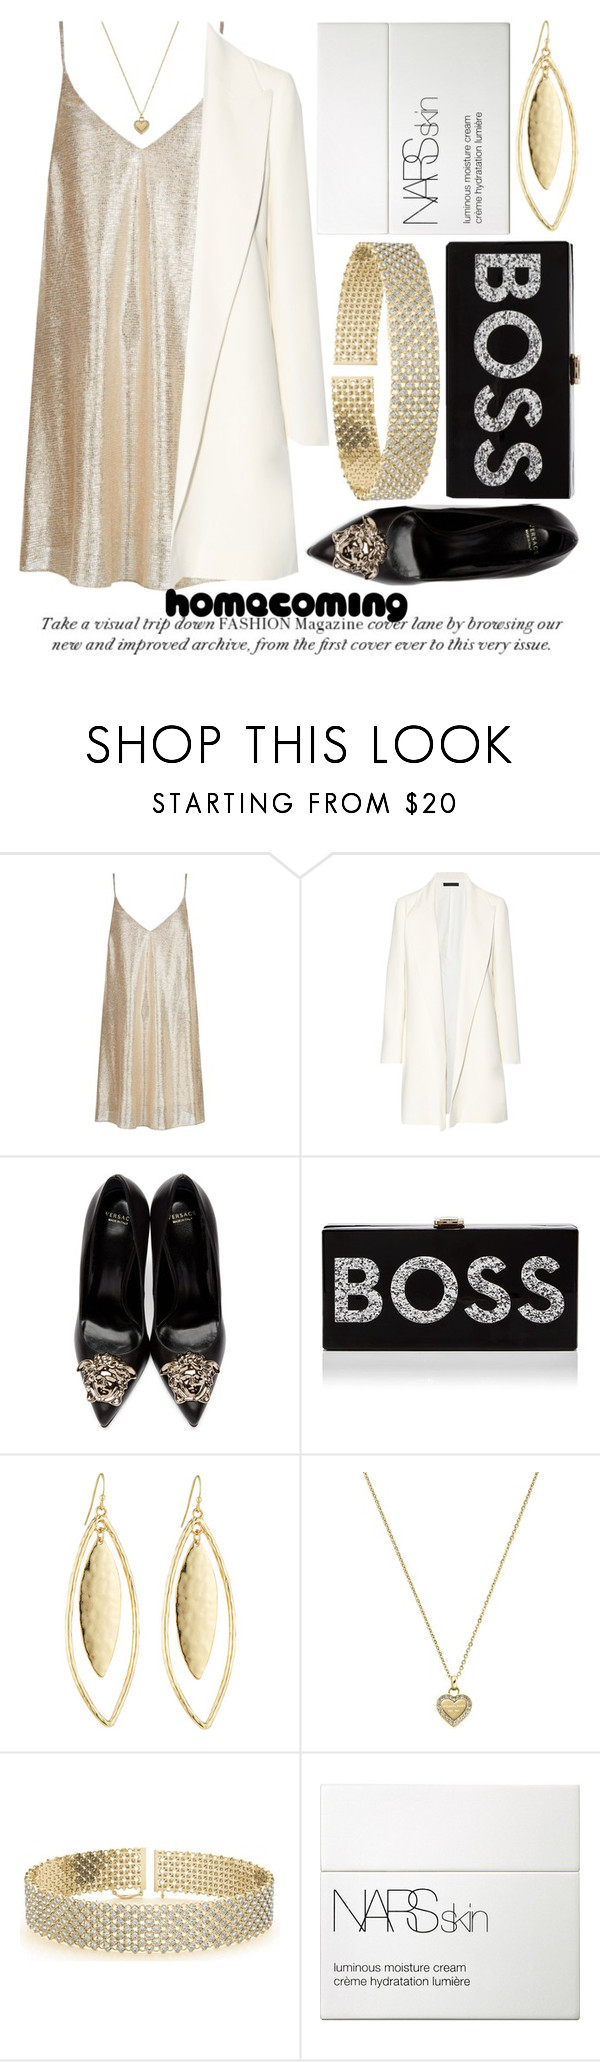 """HOMECOMING STYLE #2"" by noraaaaaaaaa ❤ liked on Polyvore featuring New Look, The Row, Versace, Milly, Fragments, Michael Kors, Allurez and NARS Cosmetics"